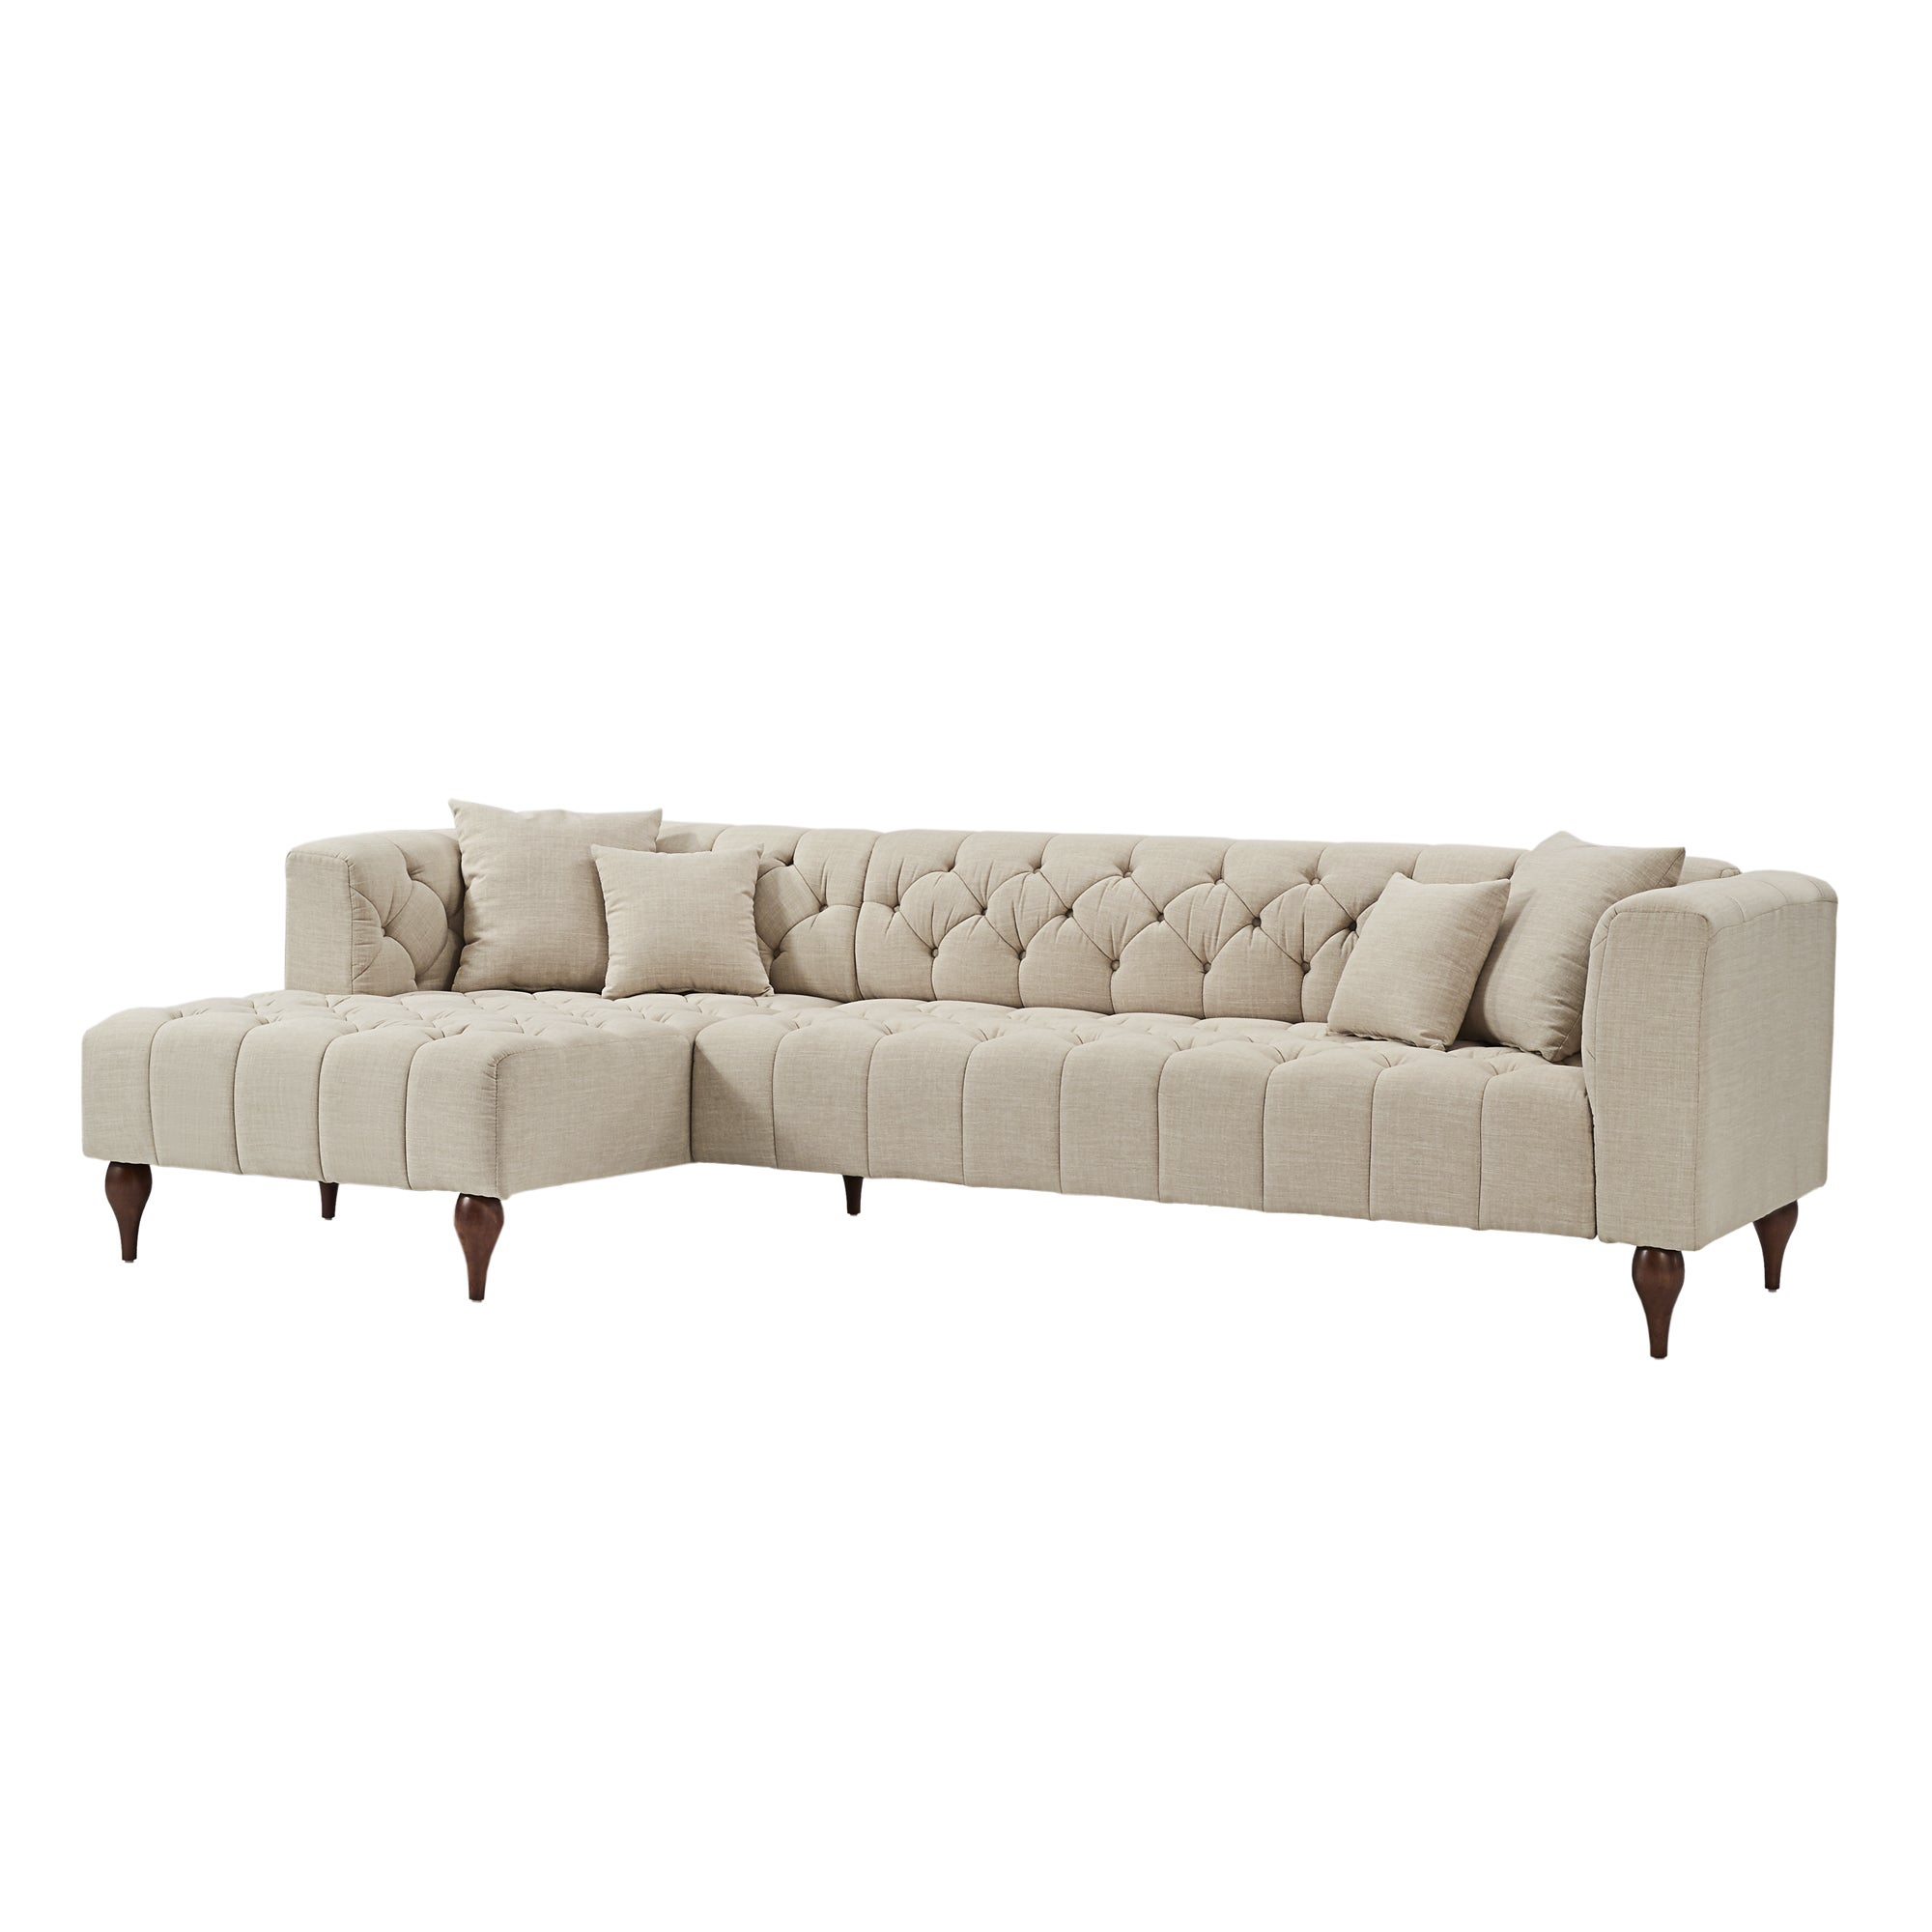 Danise Tufted Linen Upholstered Tuxedo Arm 4 Seat Sofa And Chaise By Inspire Q Artisan Overstock 22376314